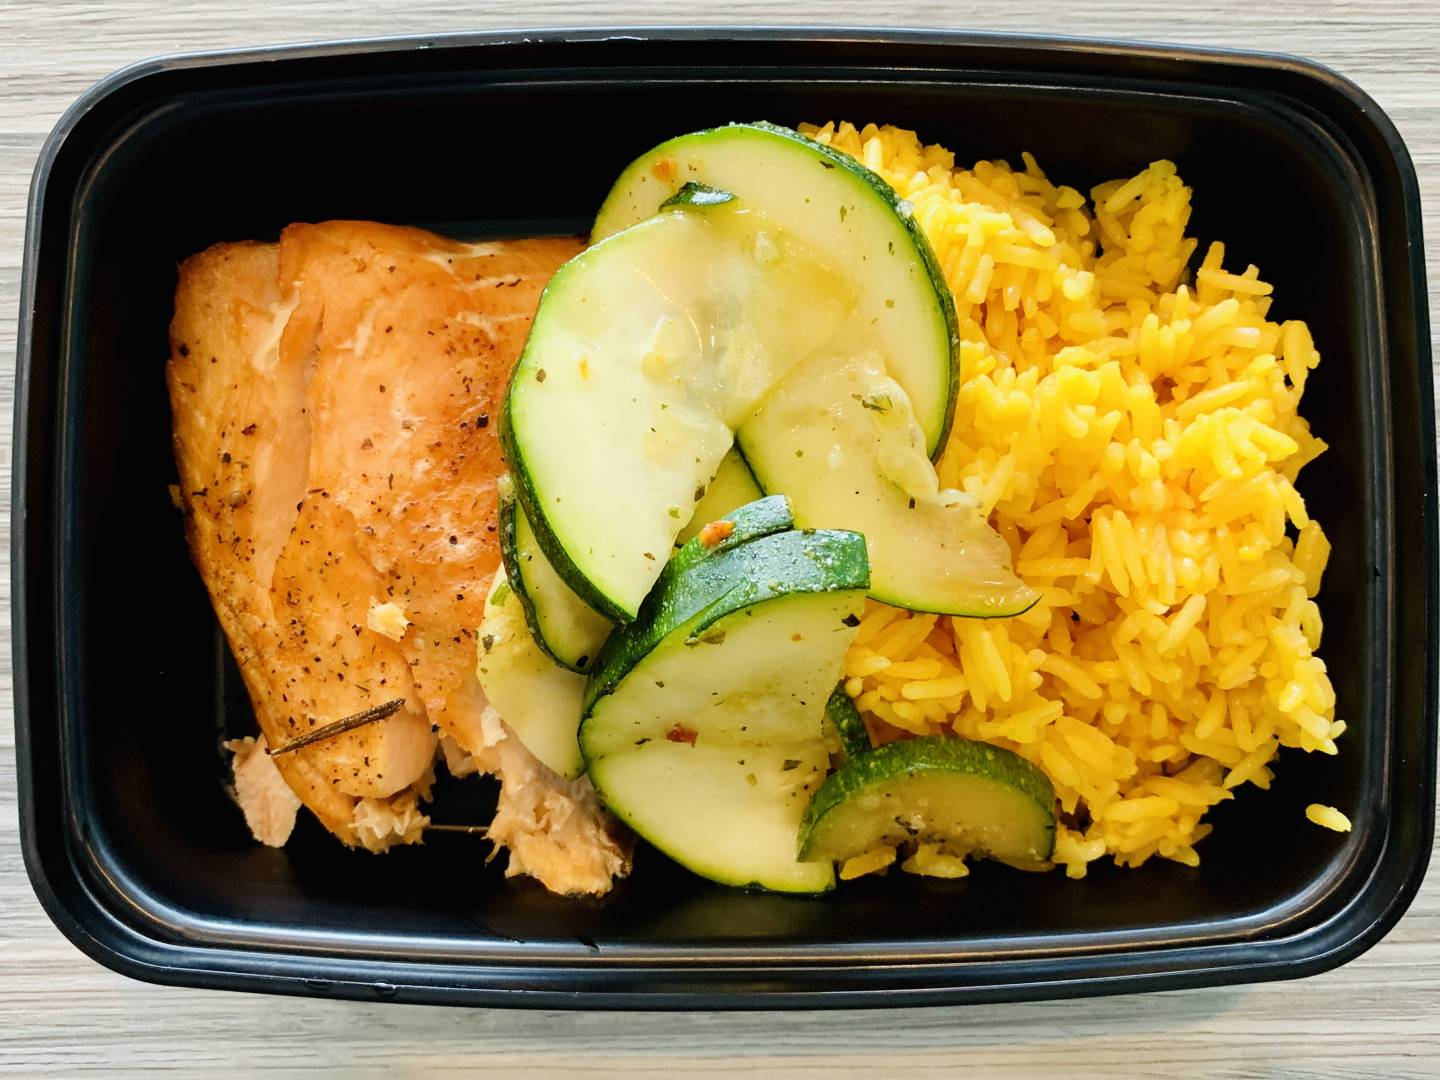 Atlantic Salmon, Yellow Rice and Zucchini